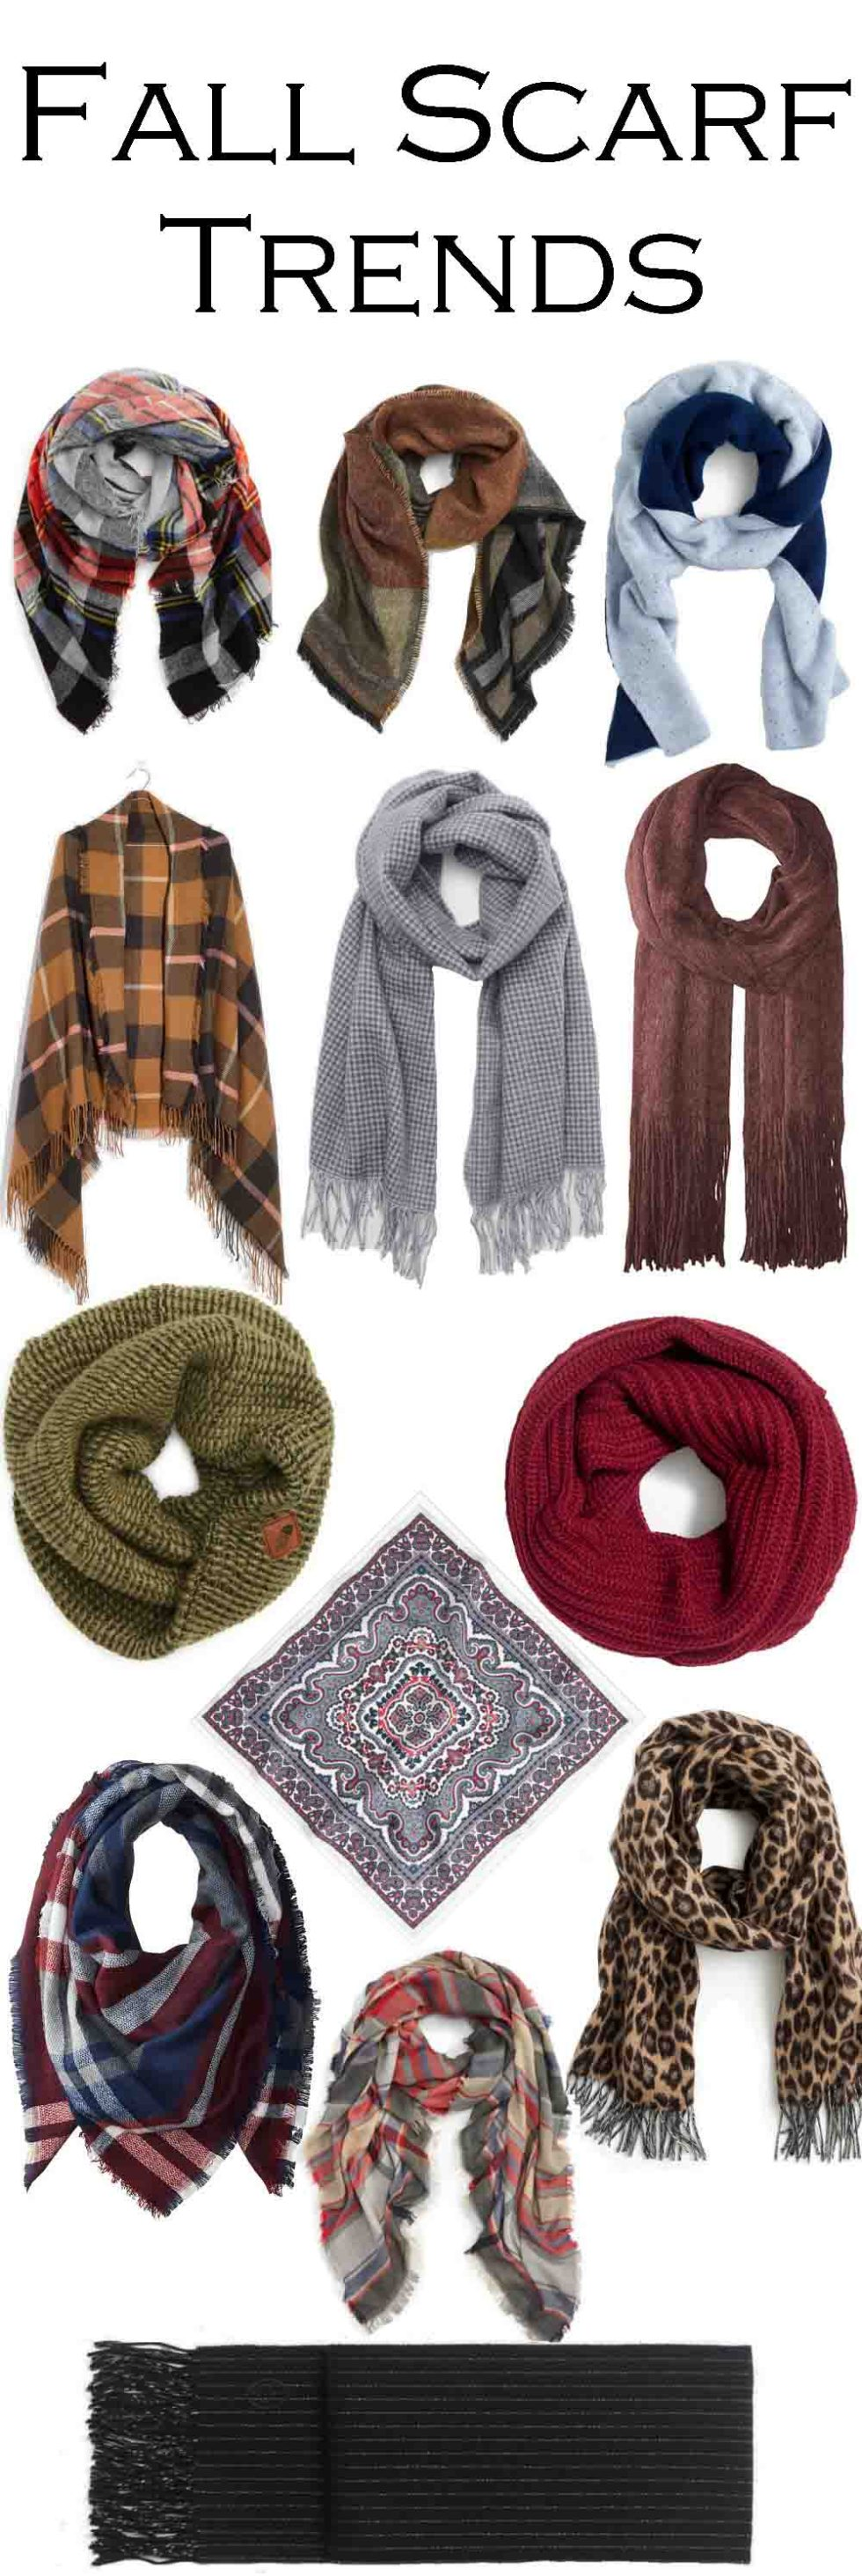 Fall Scarves 2017 Scarf Trends #fallfashion #winterfashion #winterstyle #fashionblog #fashionstyle #fashionblogger #layers #womensfashion